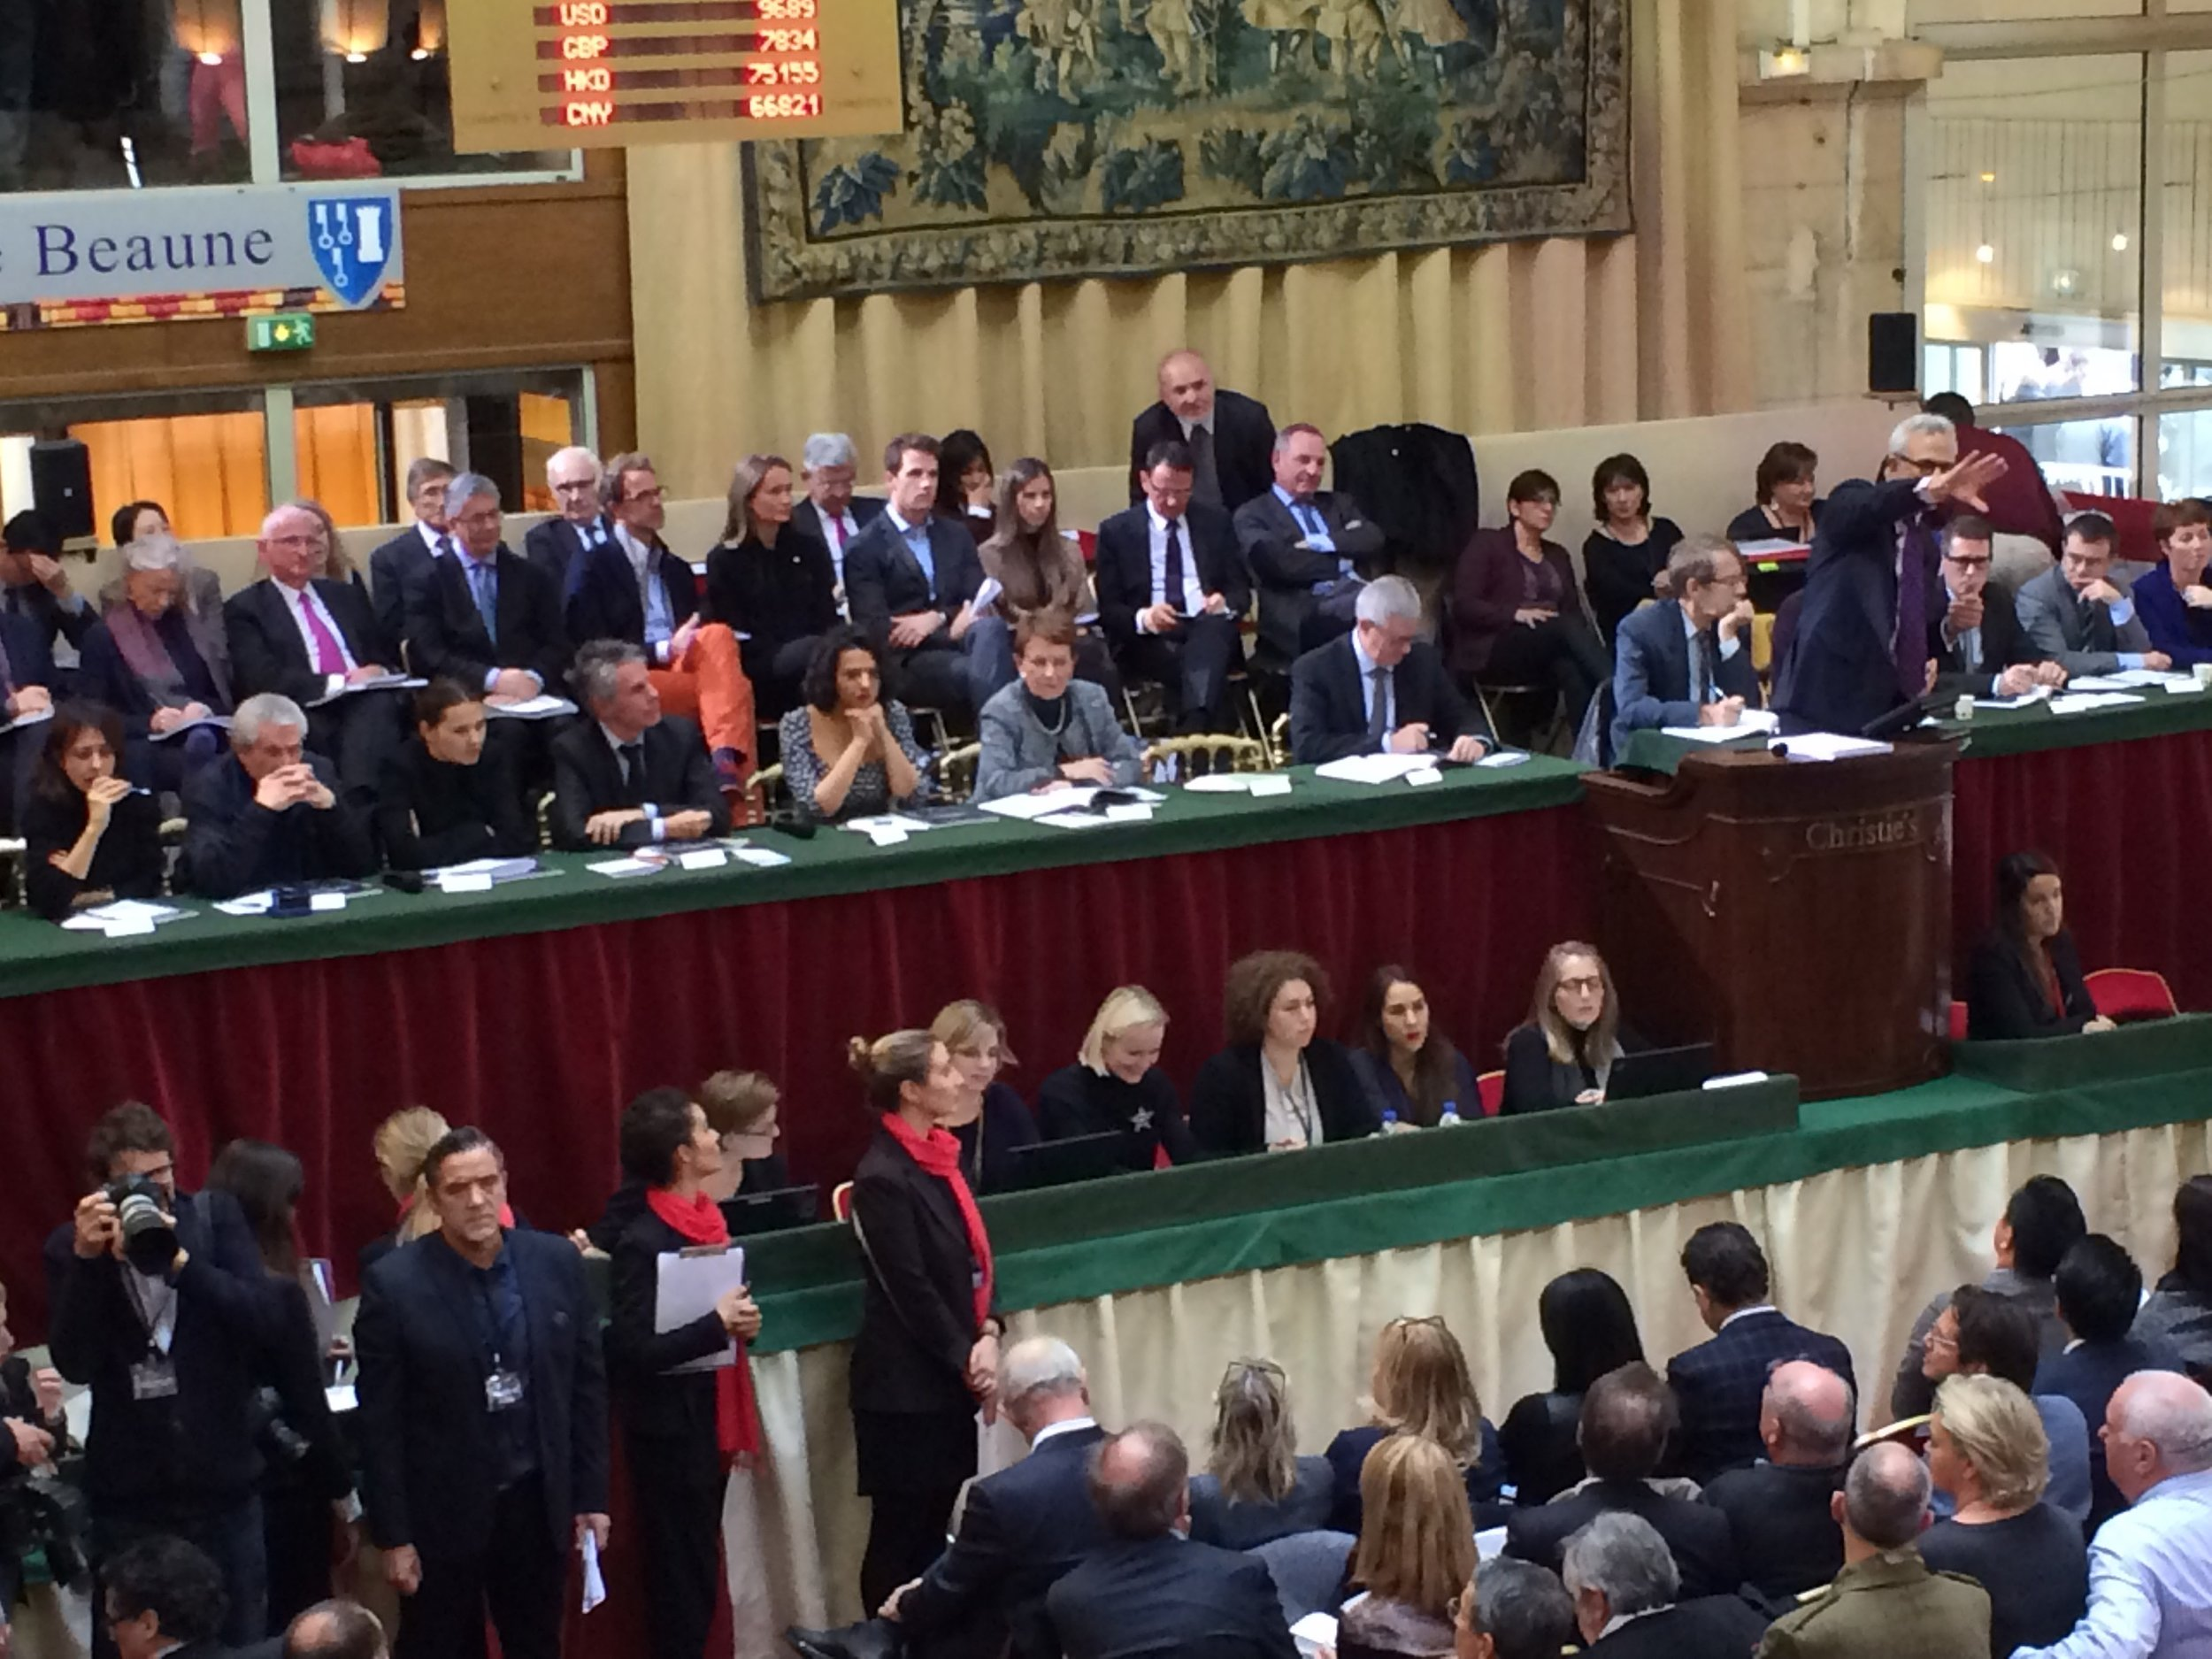 Auction action underway for the Hospices de Beaune